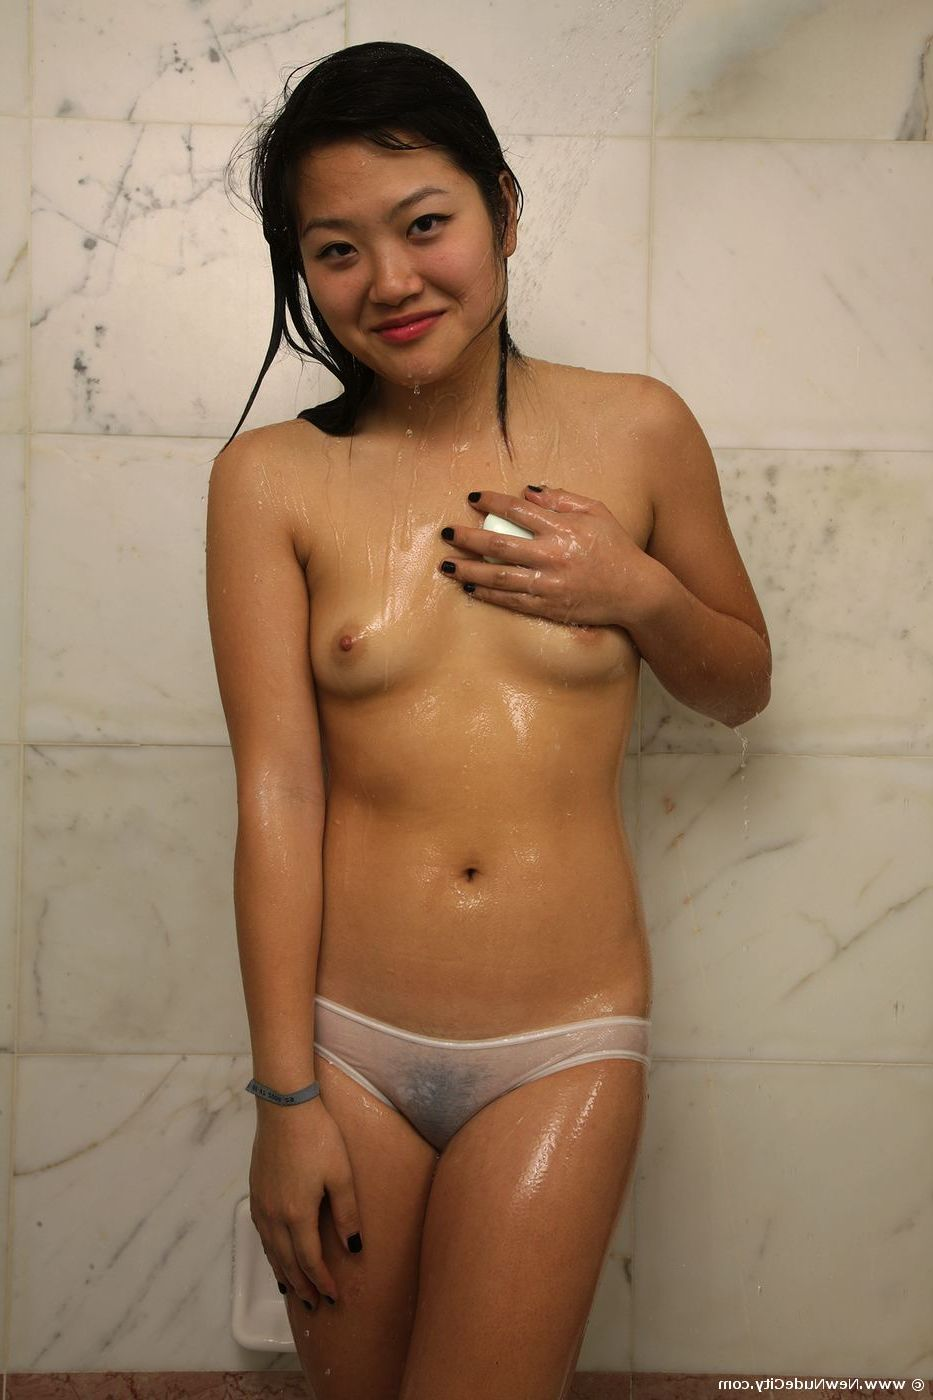 Congratulate, Asian female bottom nude